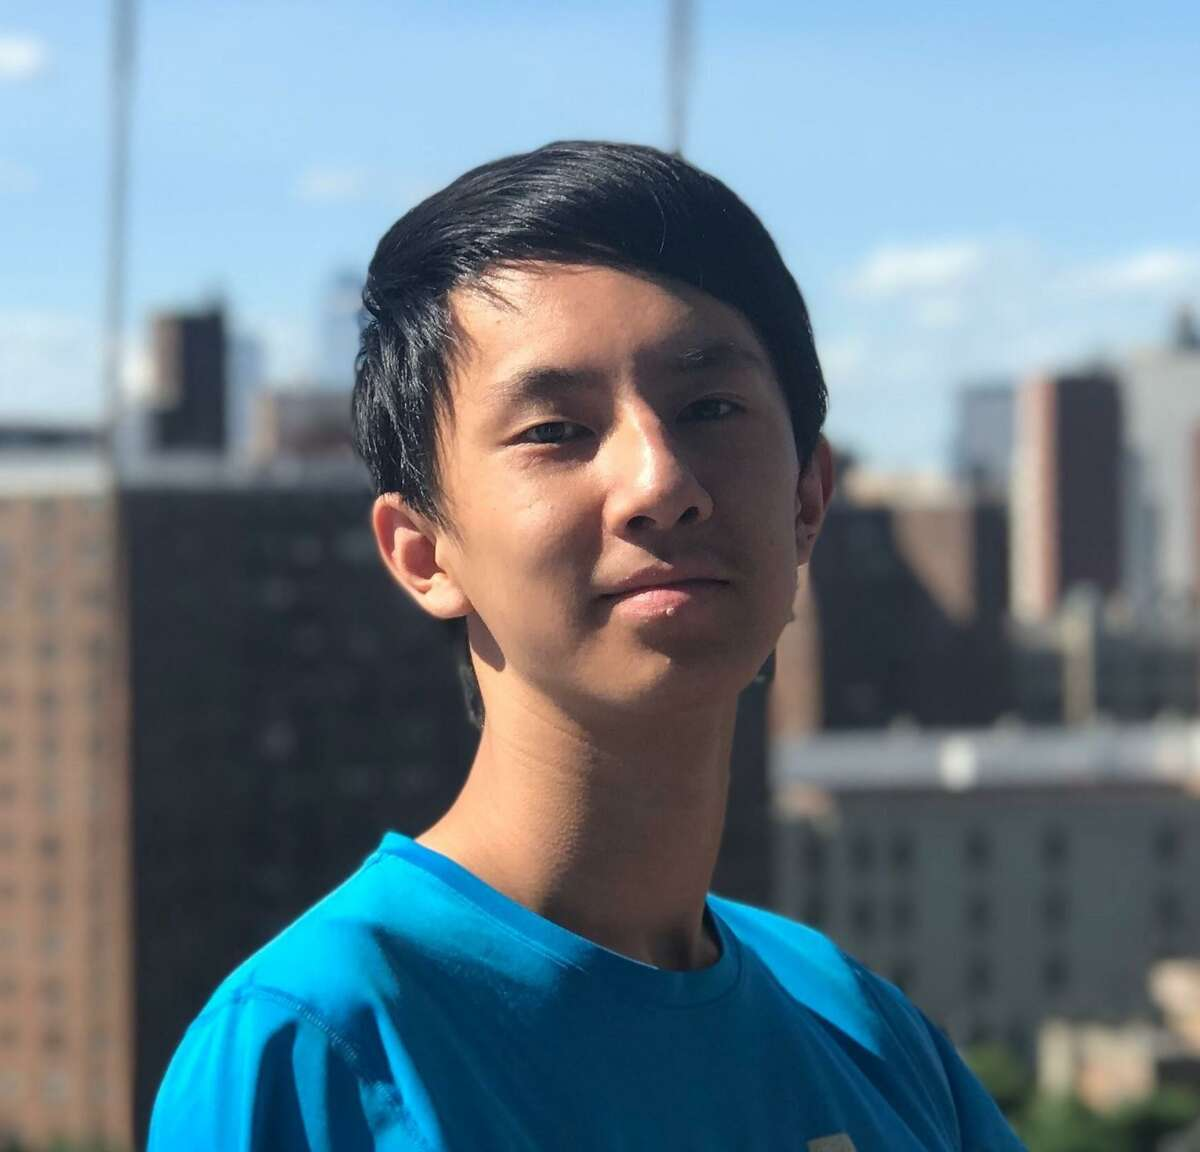 Derek Jiang is the valedictorian for Austin High School for the 2020-21 school year.